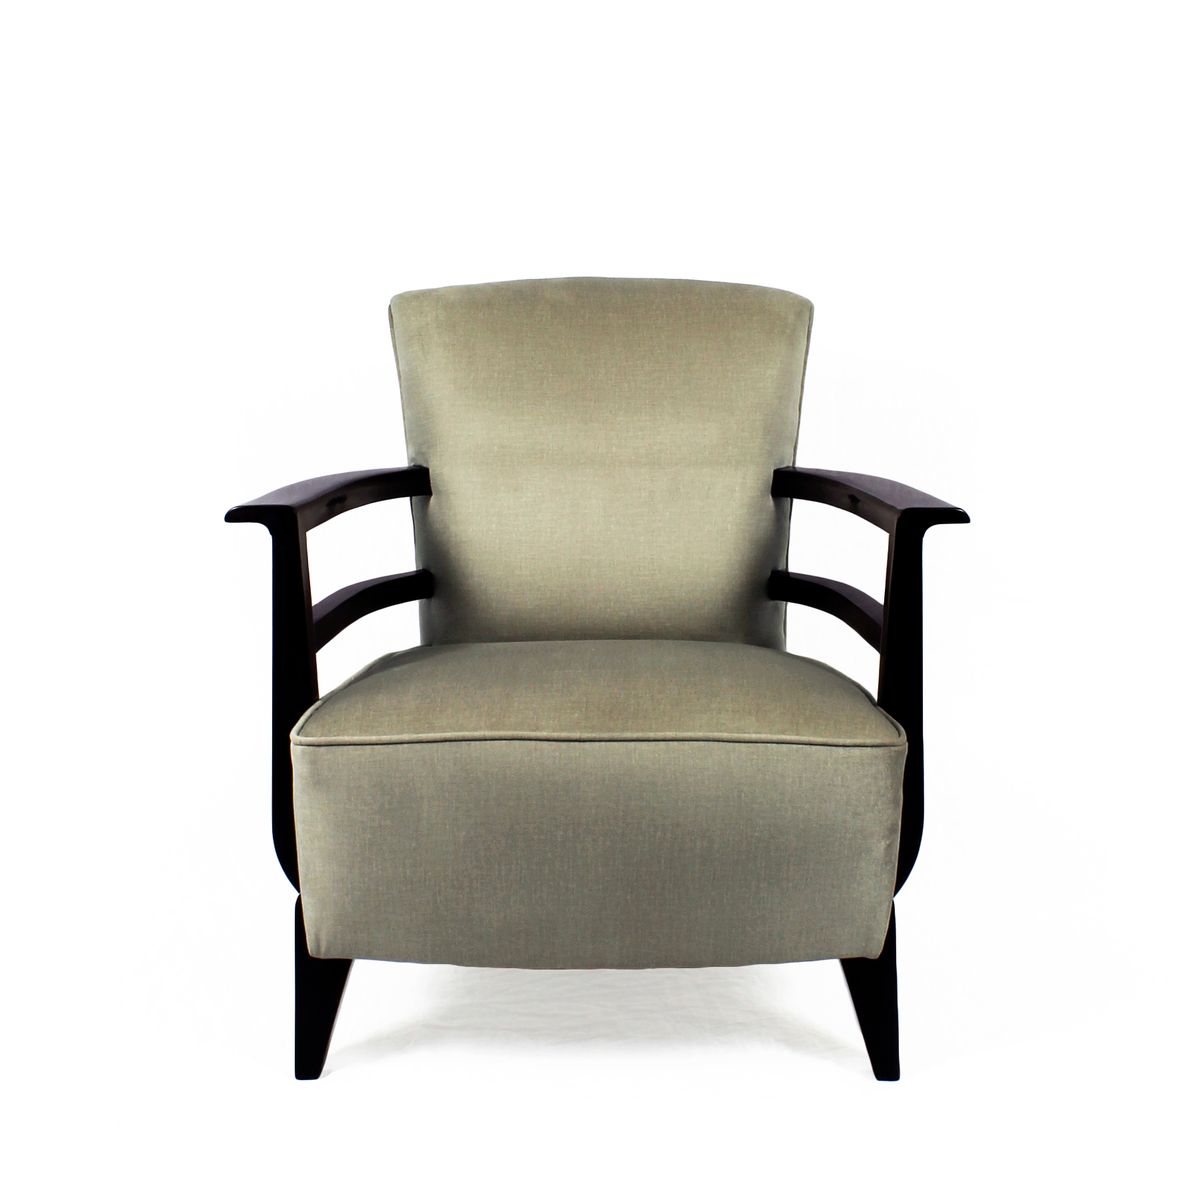 Armchairs 1940s set of 2 for sale at pamono for 2 armchairs for sale